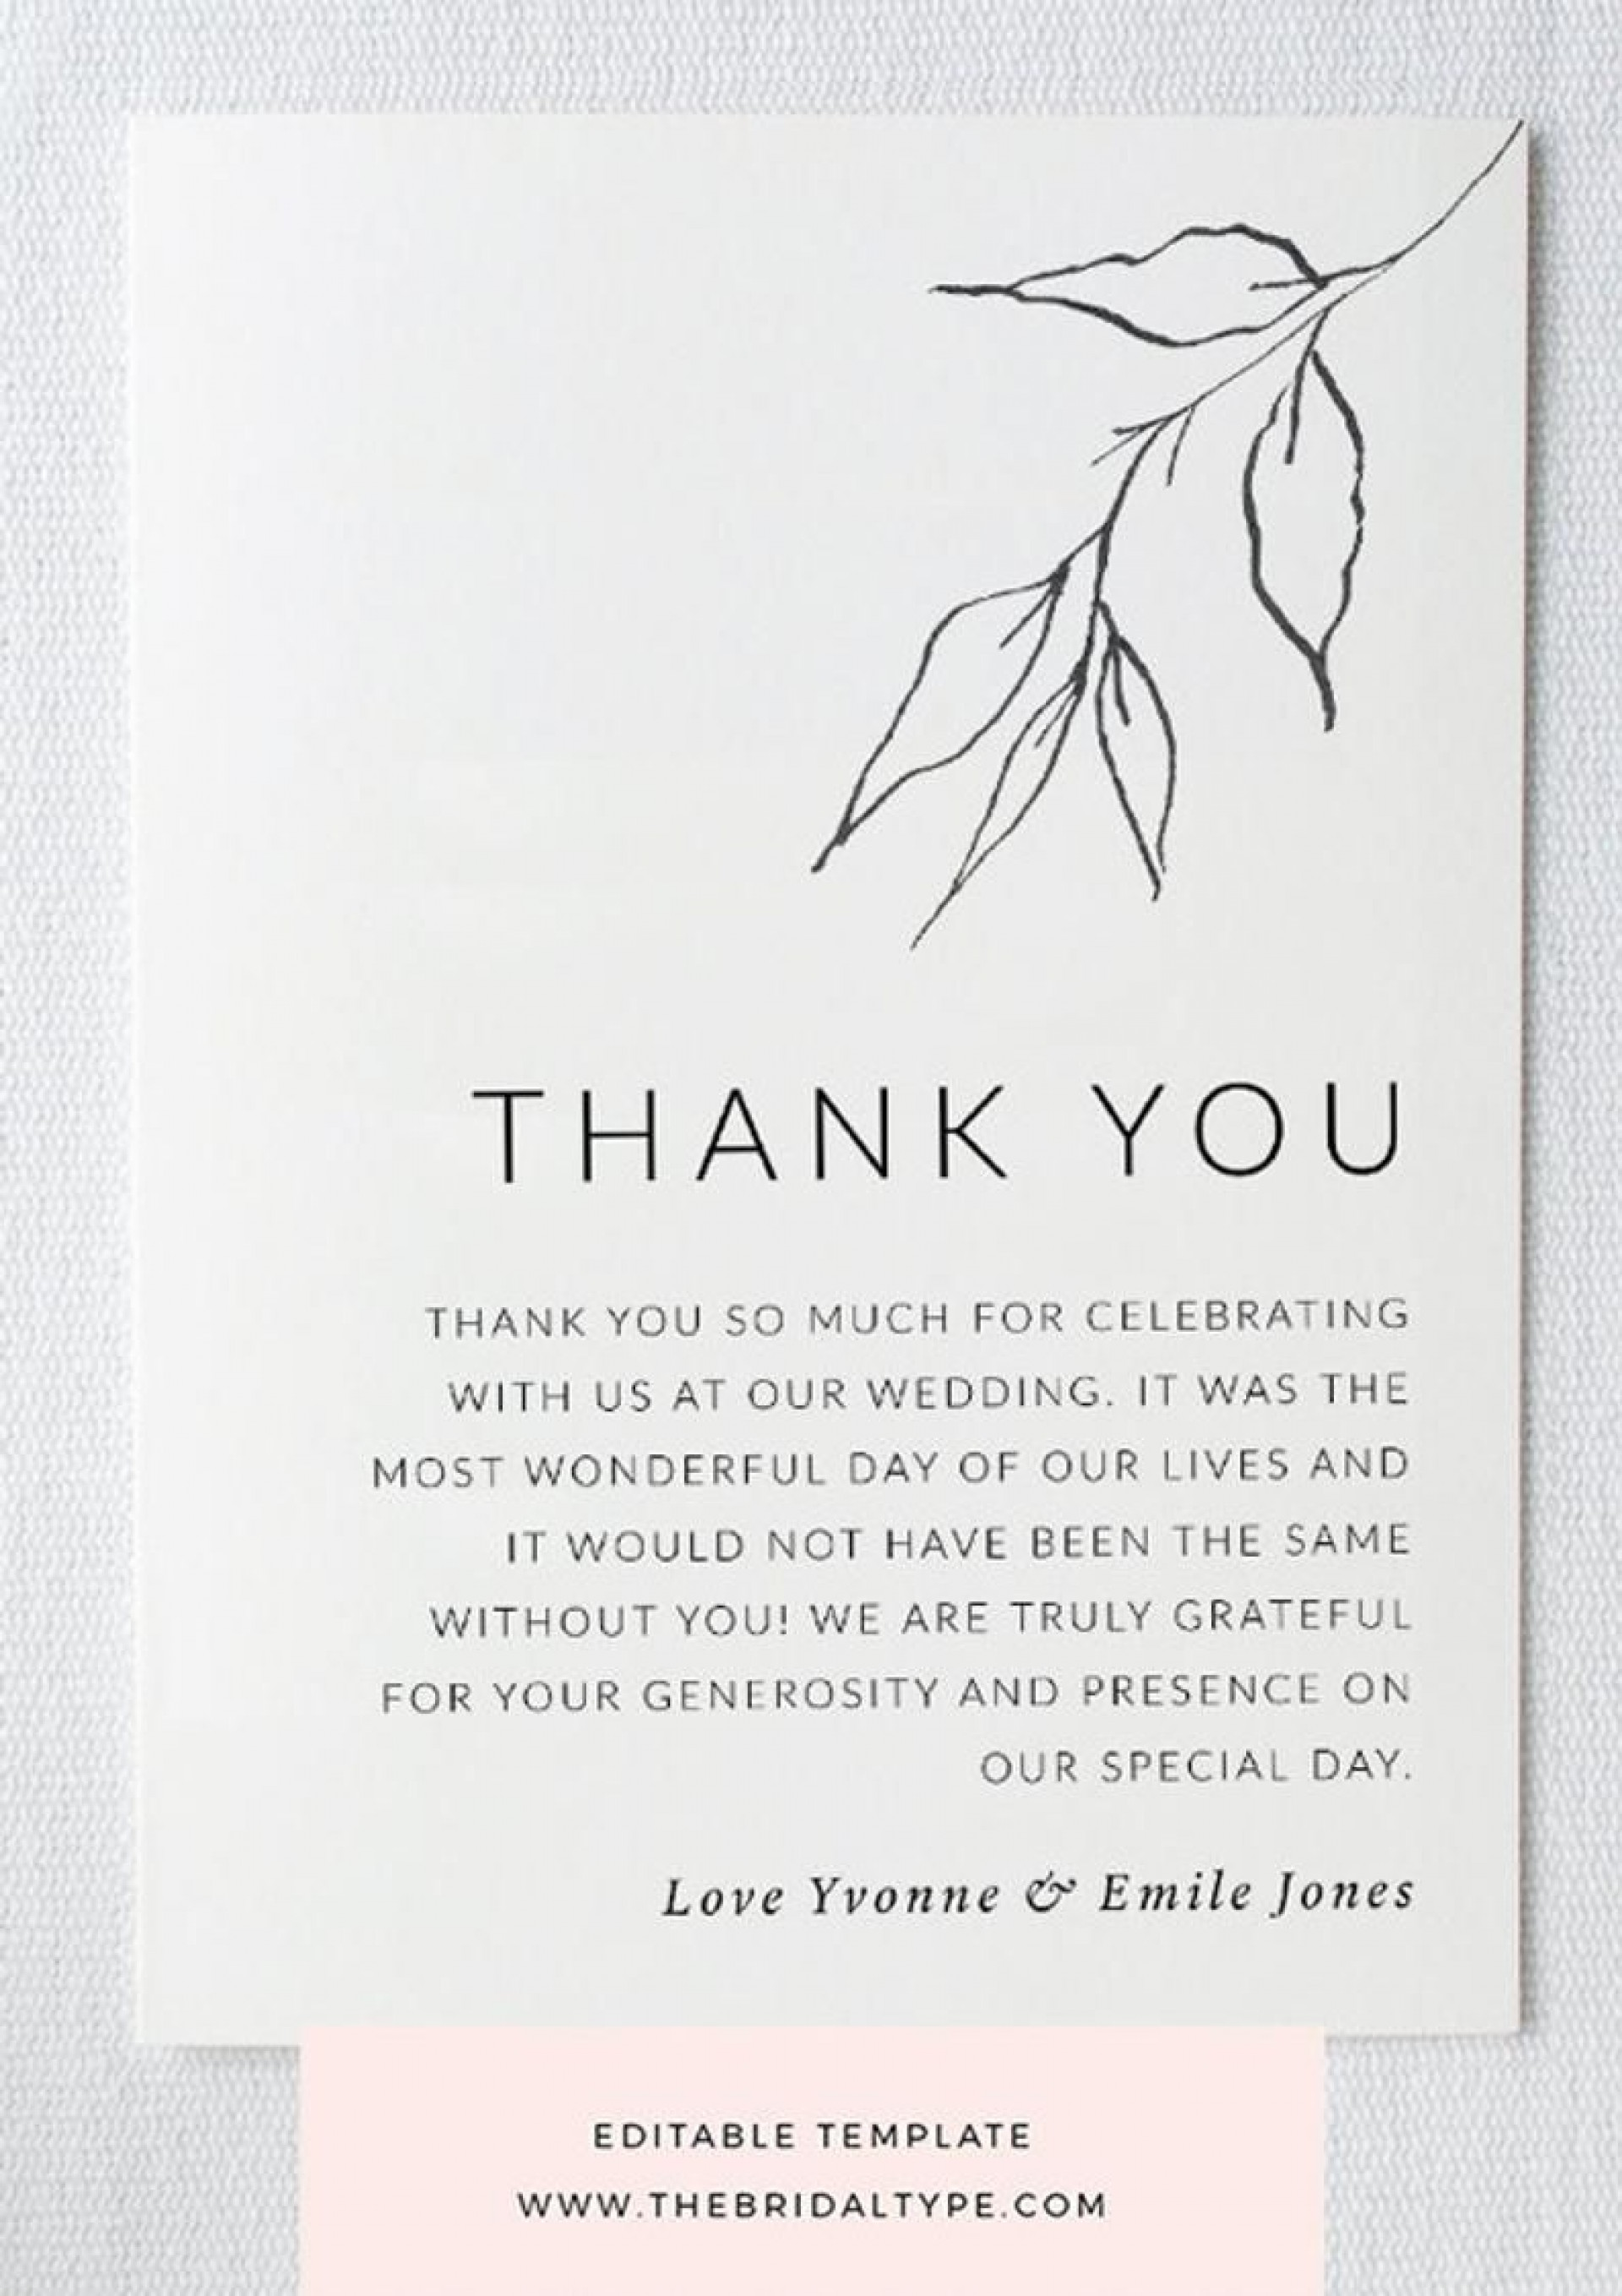 005 Incredible Thank You Card Template Wedding High Definition  Free Printable Publisher1920